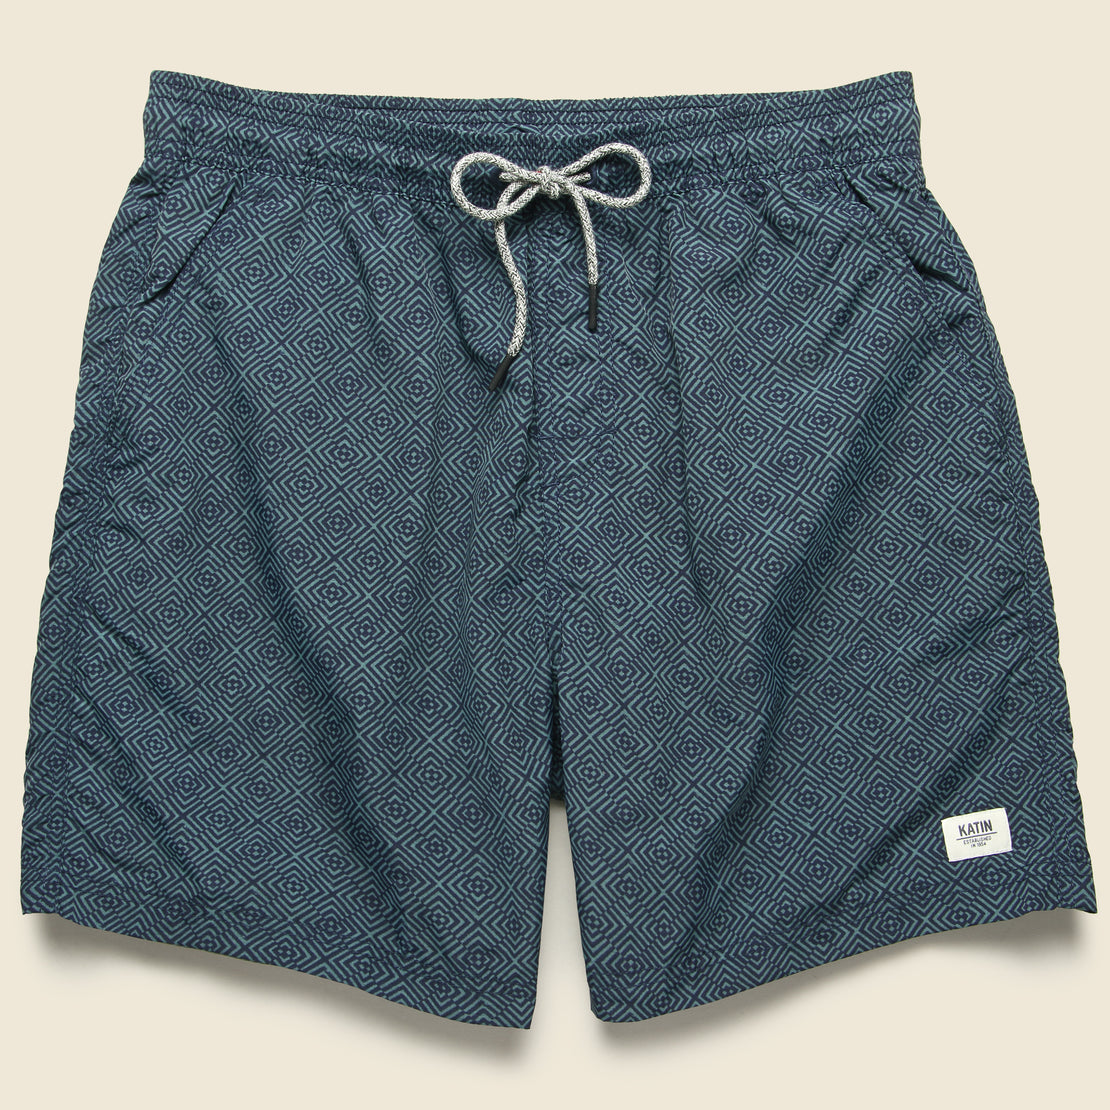 Katin Reverb Volley Swim Trunk - Baltic Blue